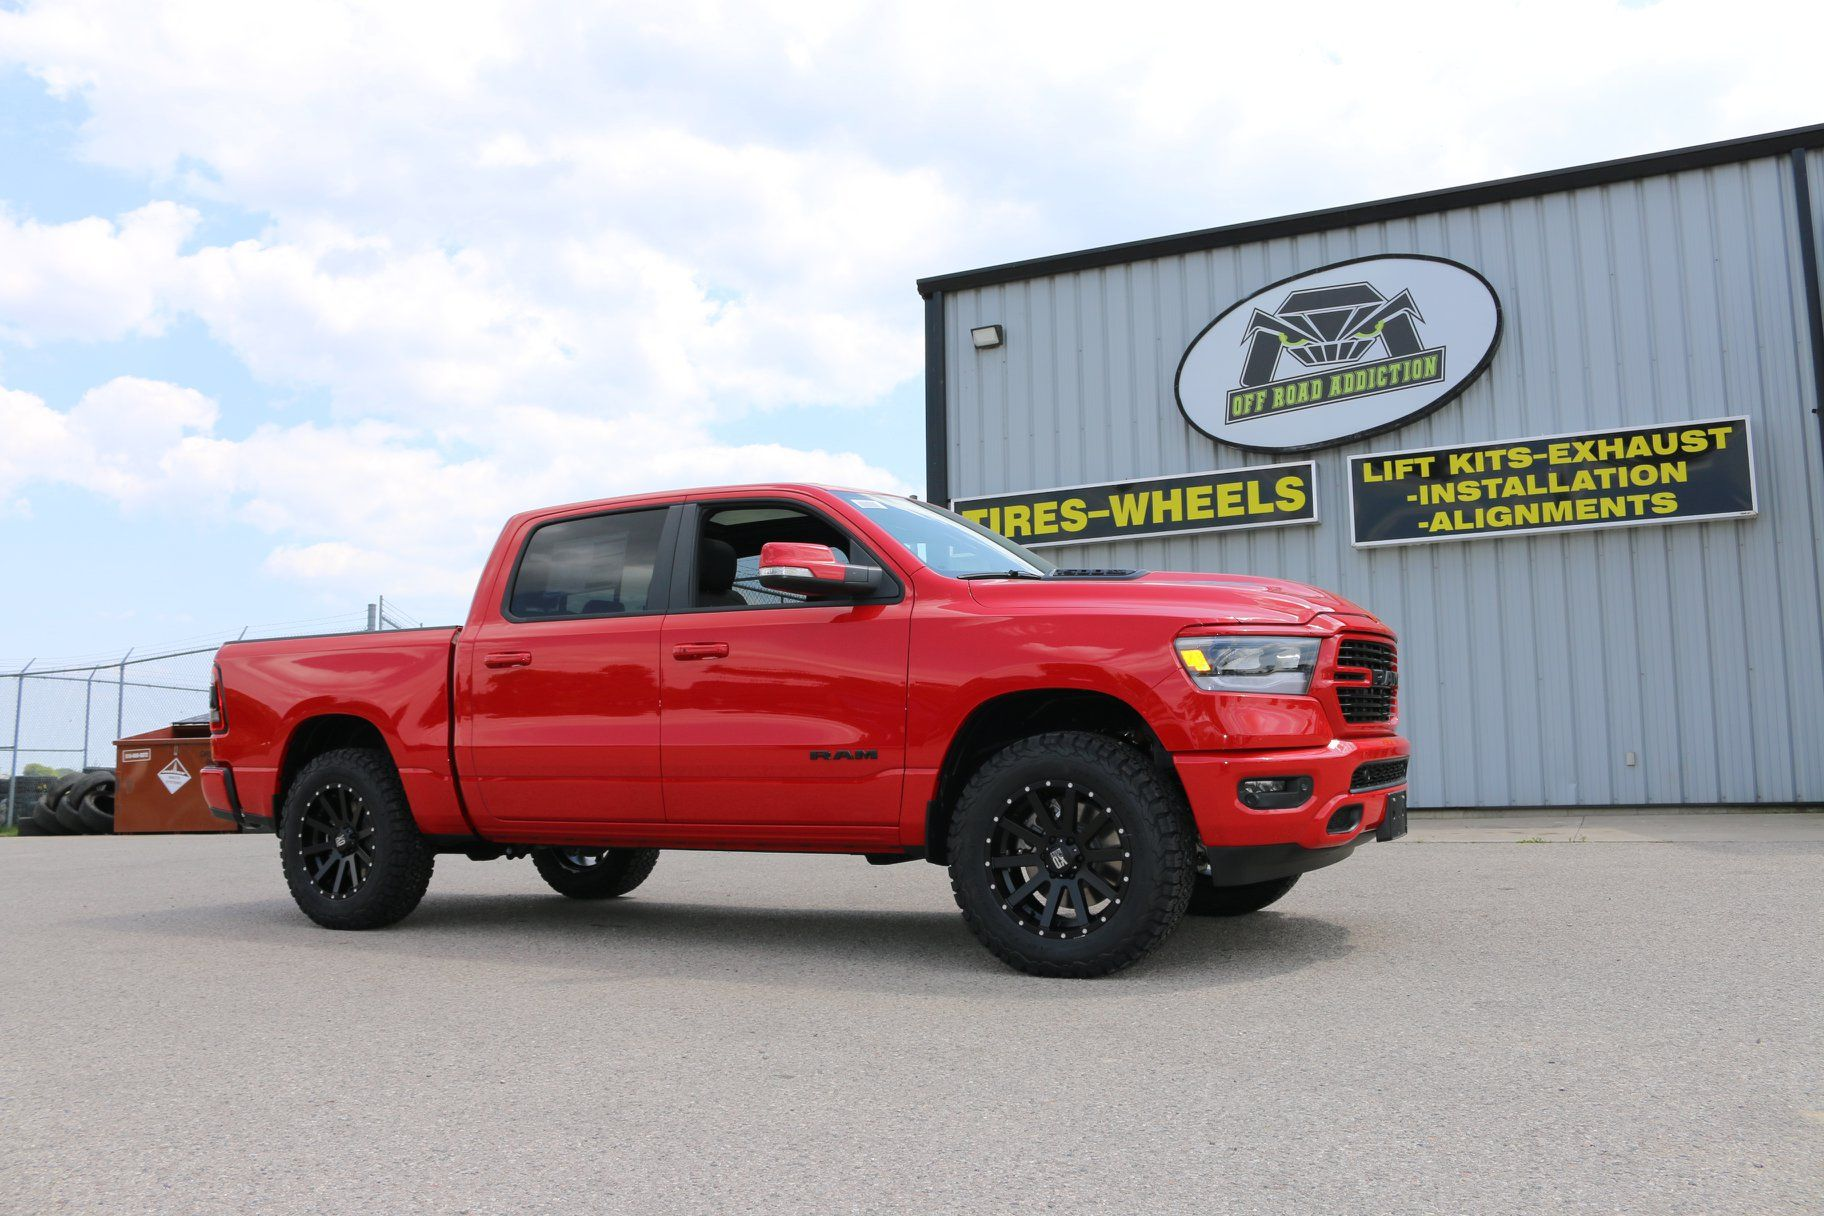 Pin By Mike Mohr On Truck Ideas In 2020 2019 Ram 1500 Ram 1500 Ram Trucks